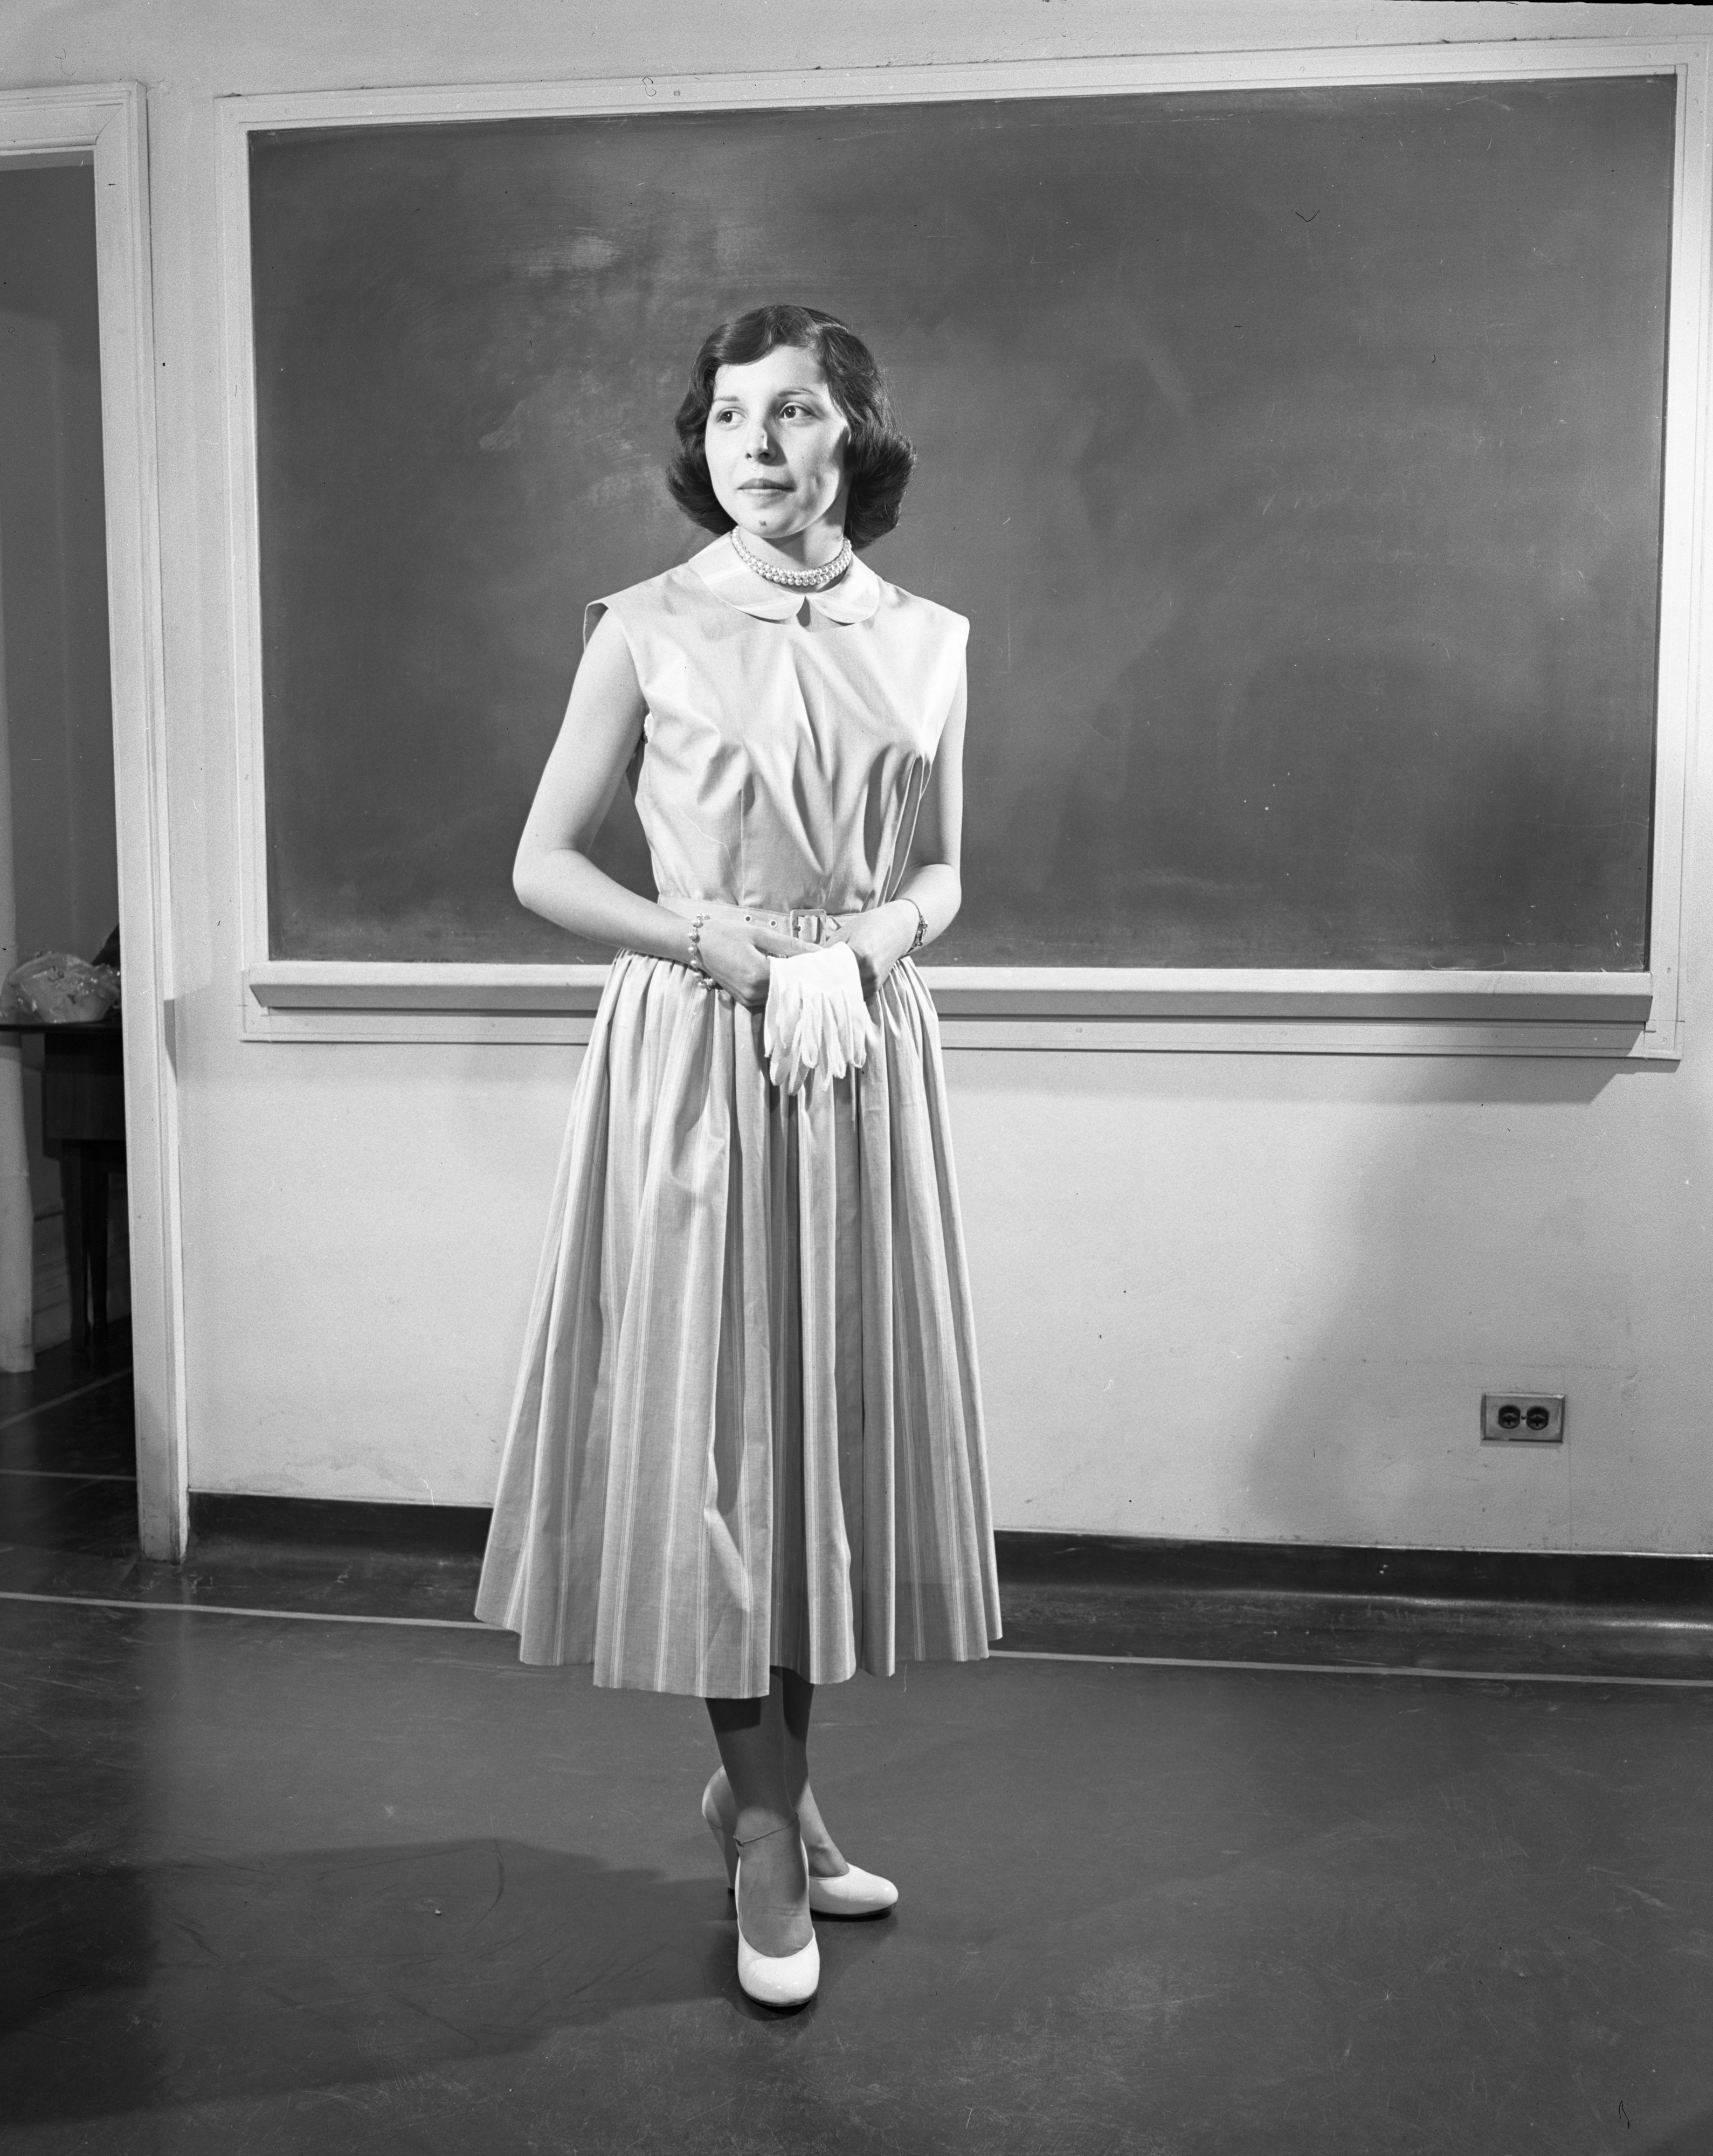 Ann Arbor High School sewing class student Shirley Driver models an outfit made for a style show, April 1953 image